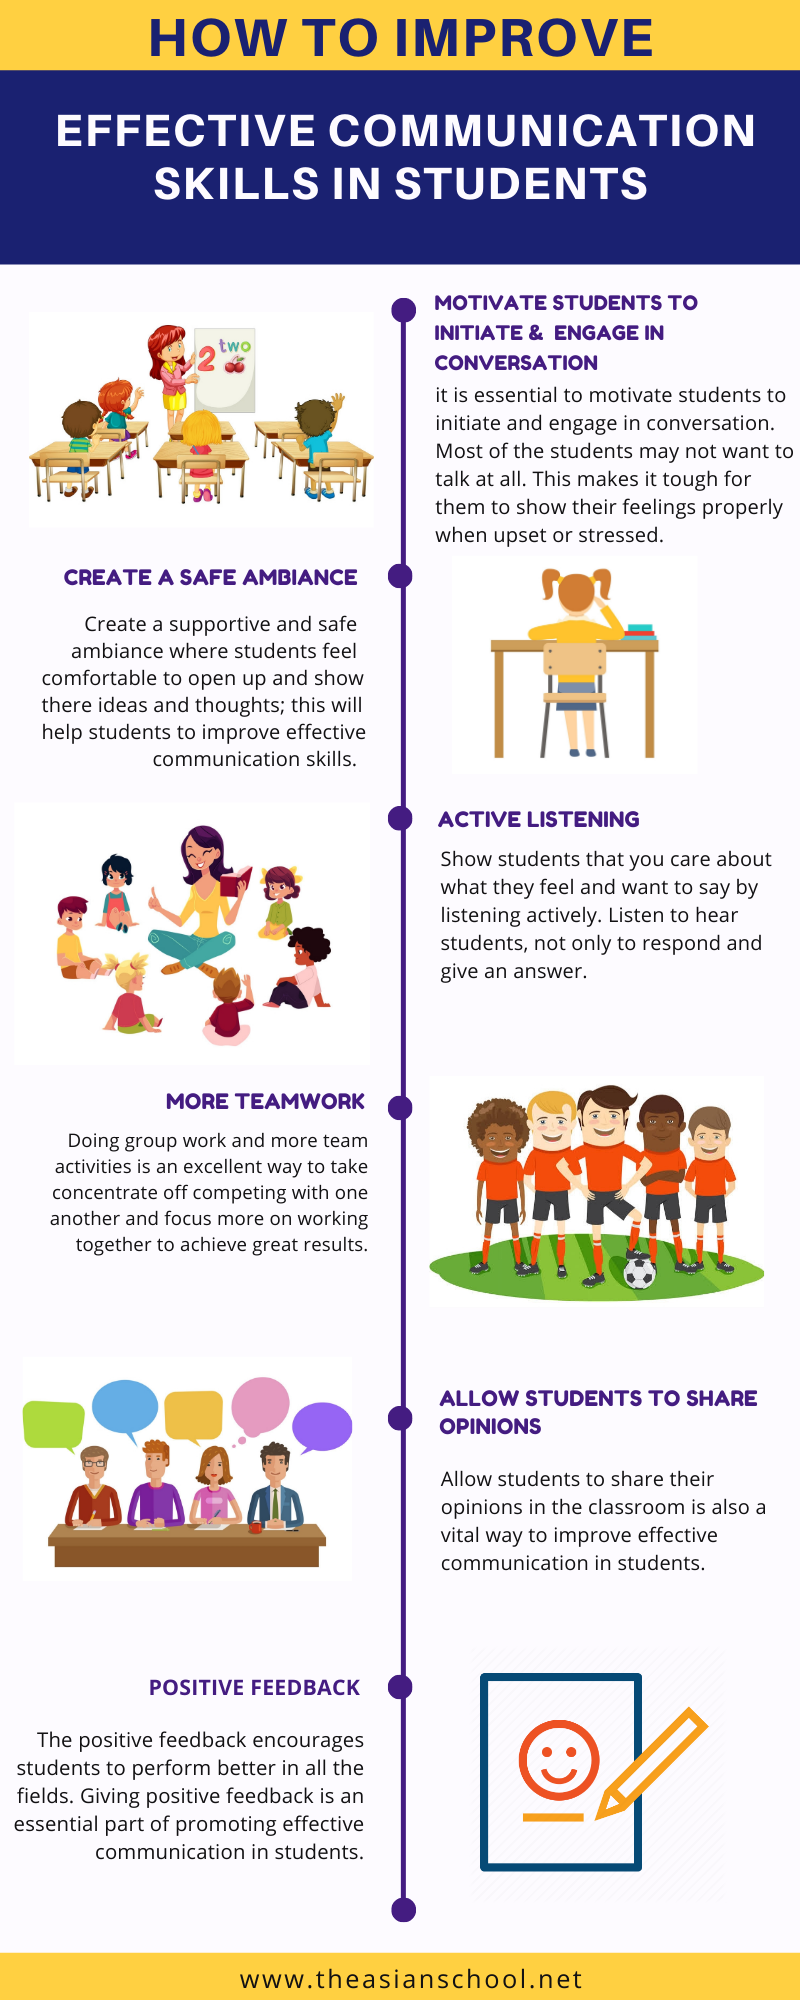 How To Improve Effective Communication Skills In Students Effective Communication Skills Improve Communication Skills Effective Communication